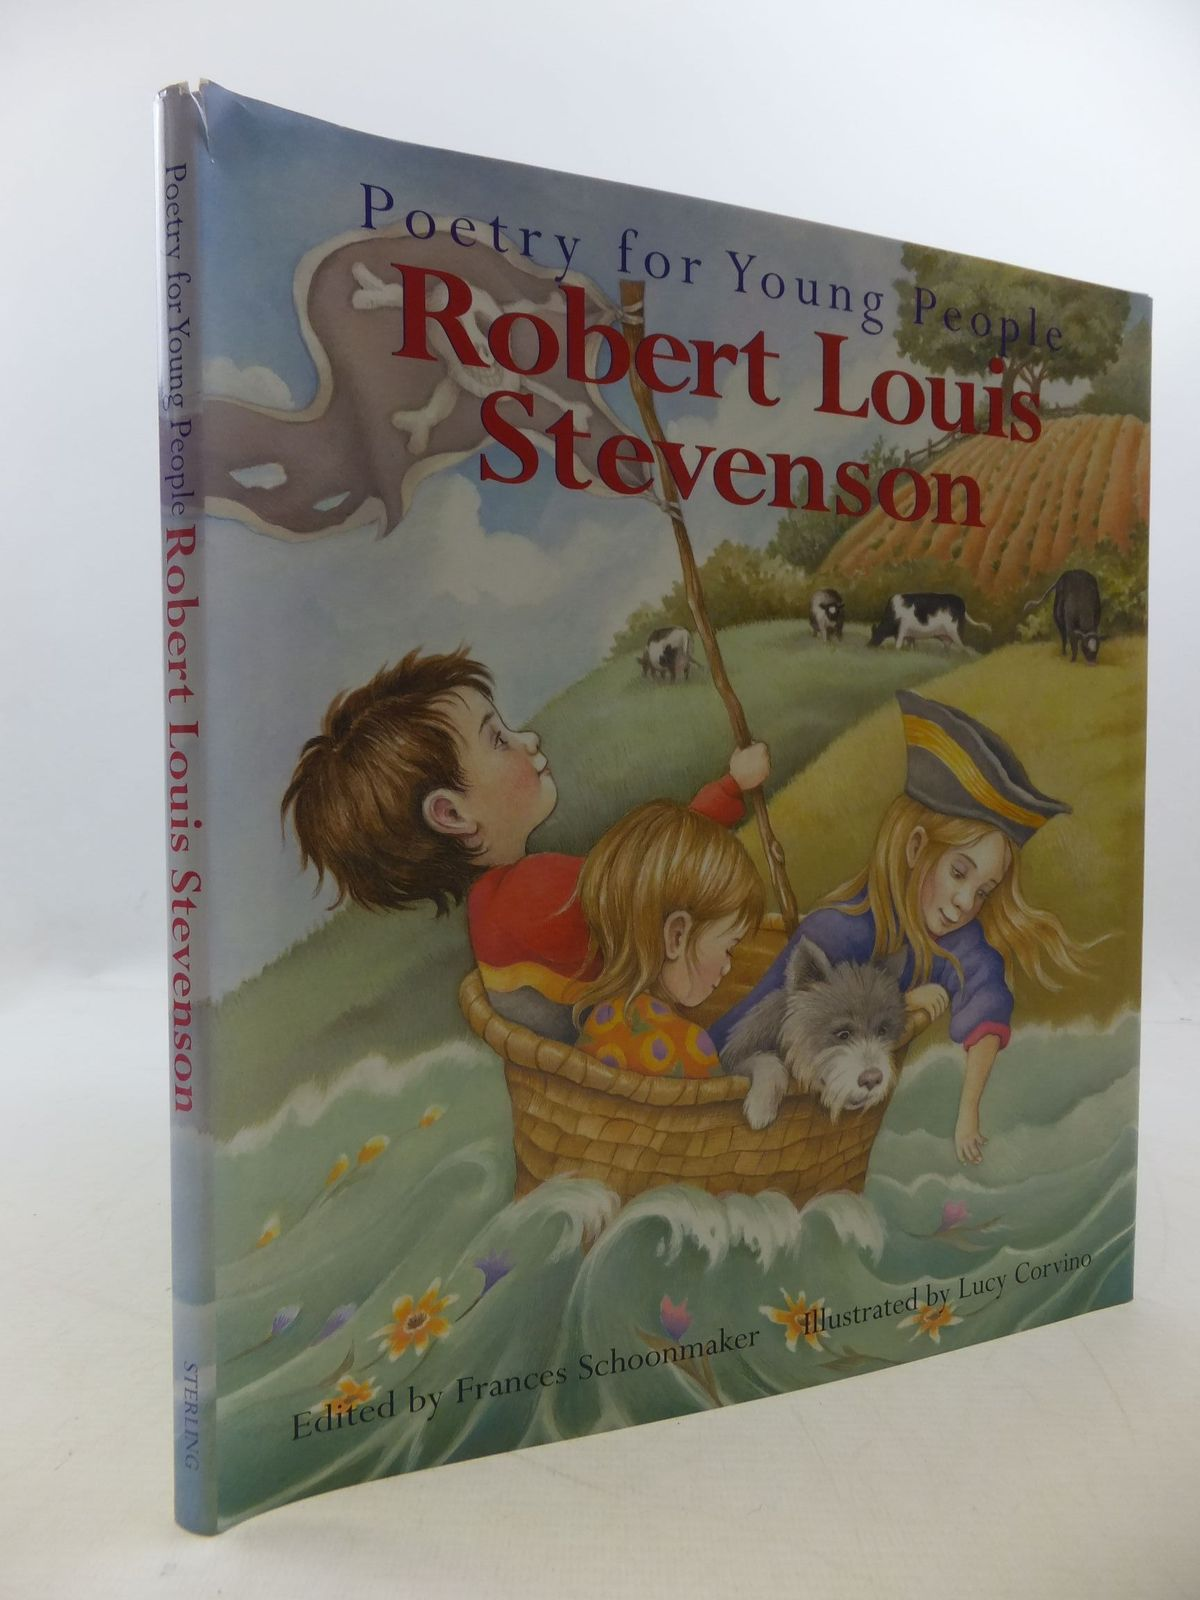 Photo of POETRY FOR YOUNG PEOPLE ROBERT LOUIS STEVENSON written by Stevenson, Robert Louis<br />Schoonmaker, Frances illustrated by Corvino, Lucy published by Sterling Publishing Co., Inc. (STOCK CODE: 2112610)  for sale by Stella & Rose's Books